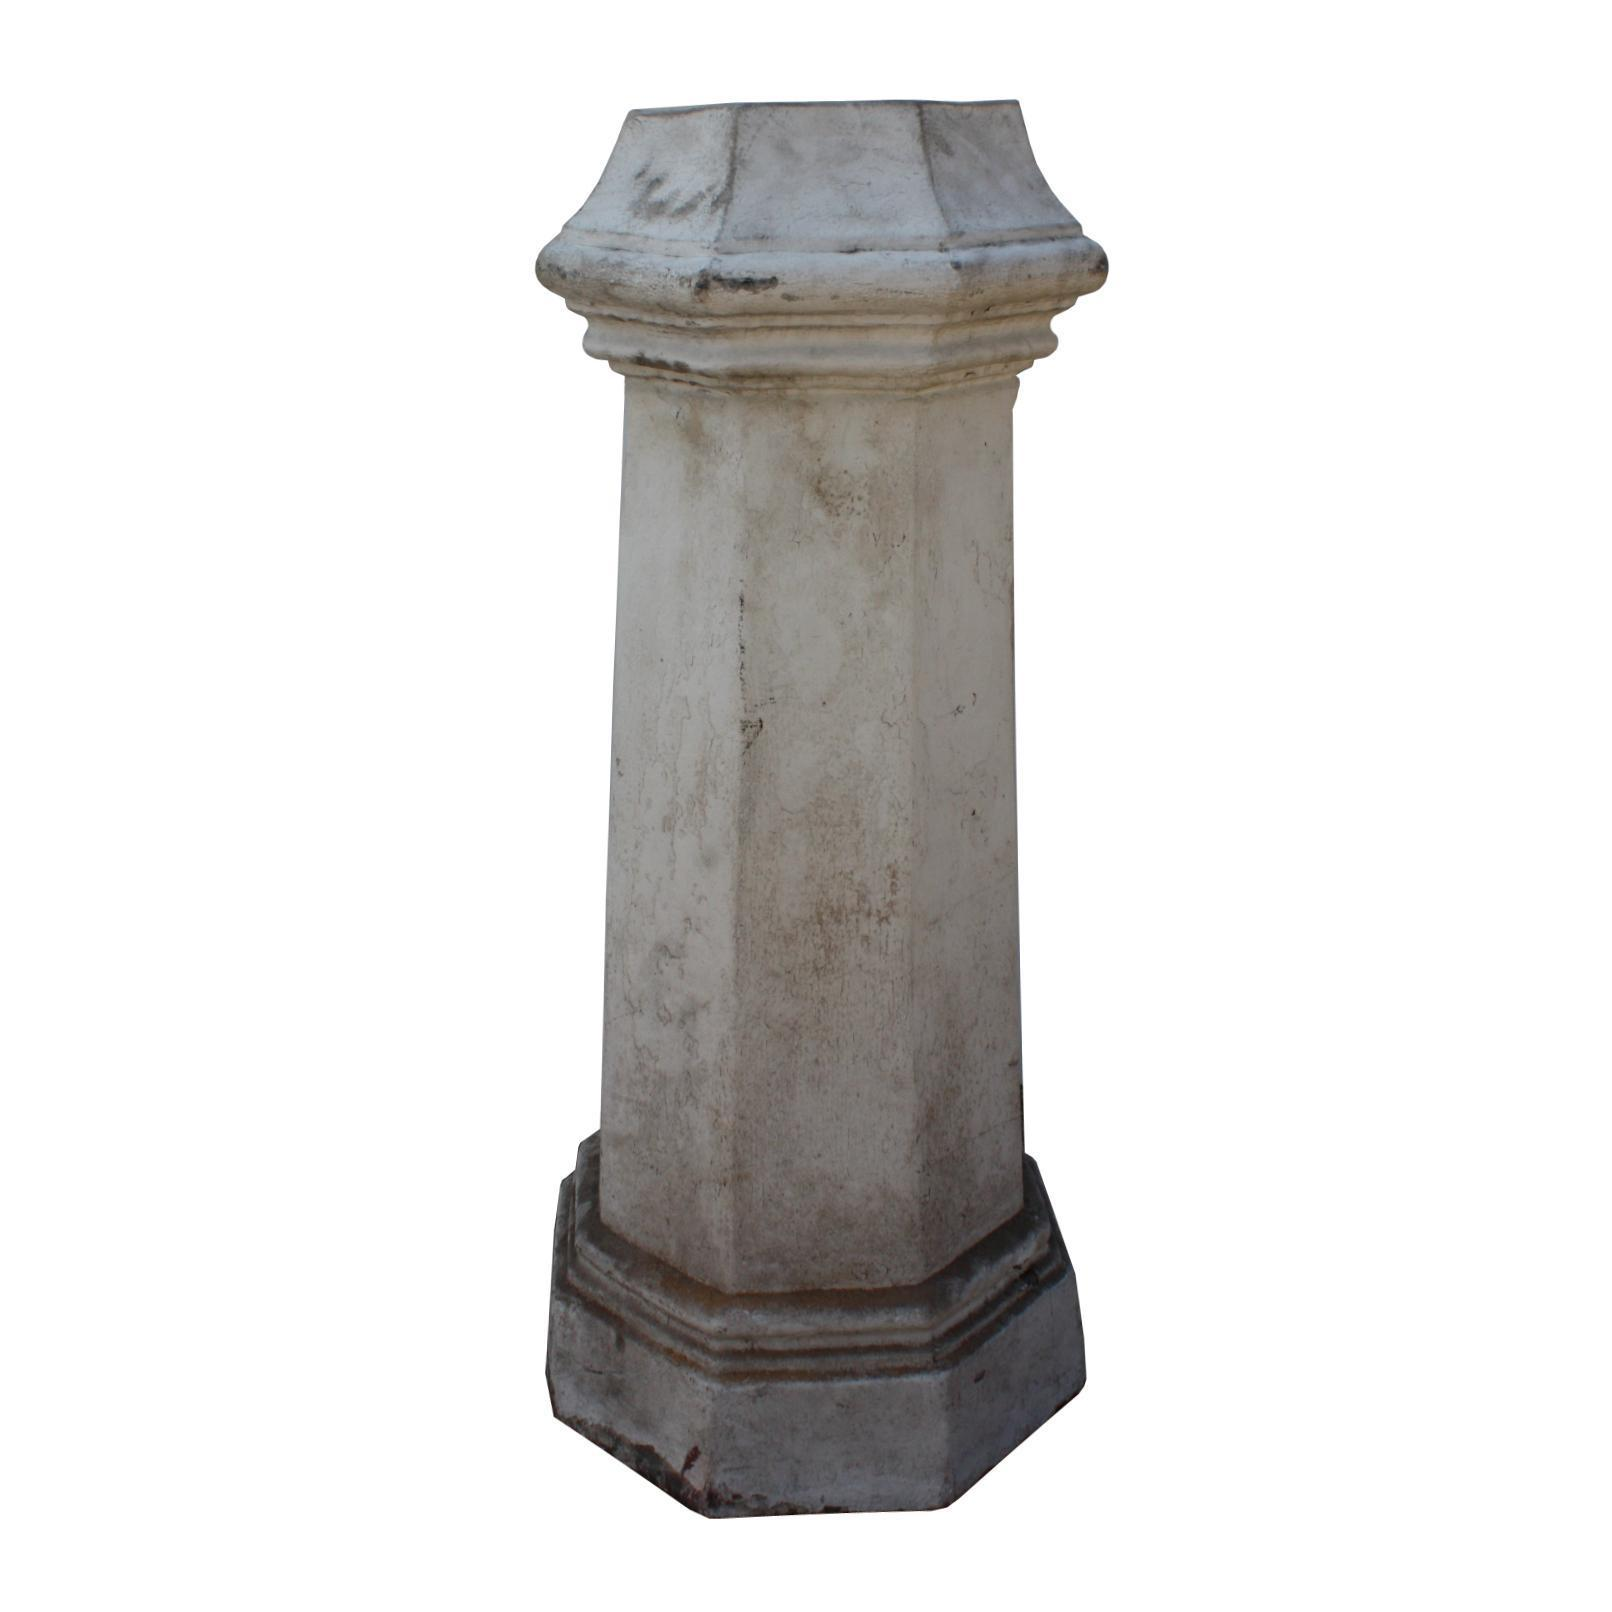 Reclaimed Antique Terra Cotta Chimney Pot, Early 1900's